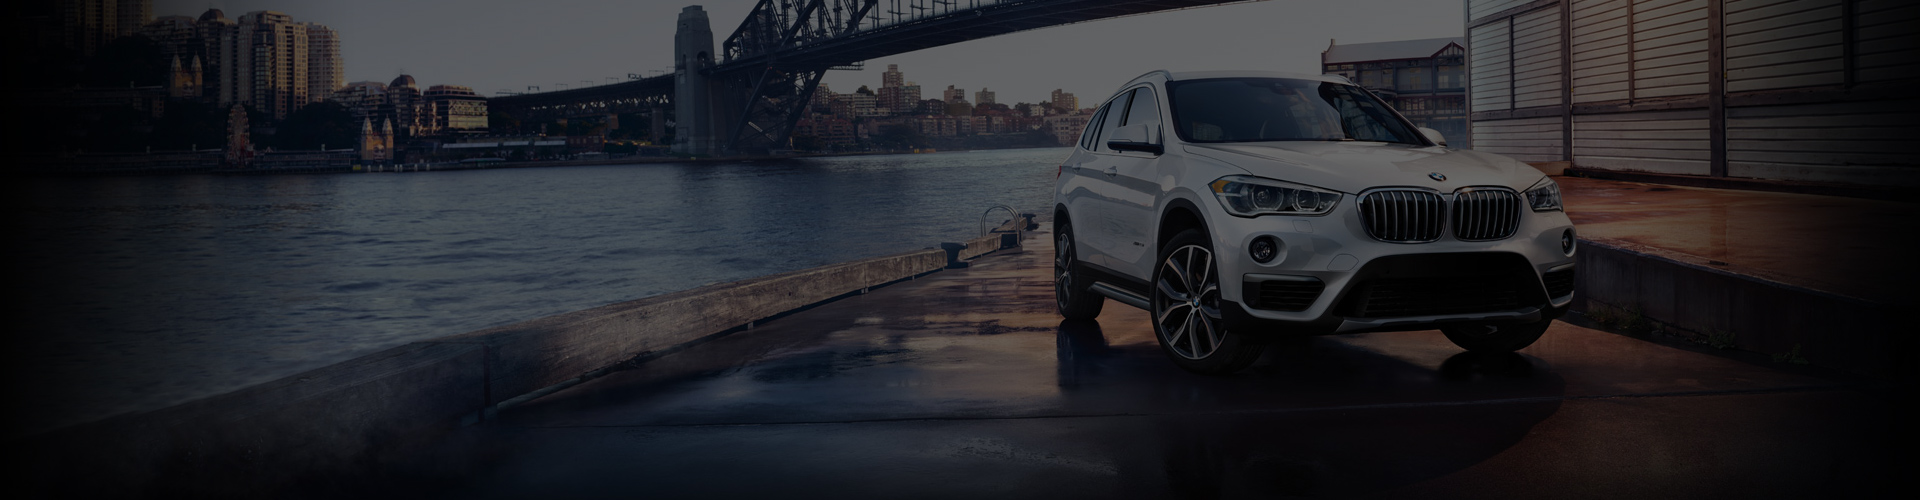 White BMW SUV on river dock with water and bridge.